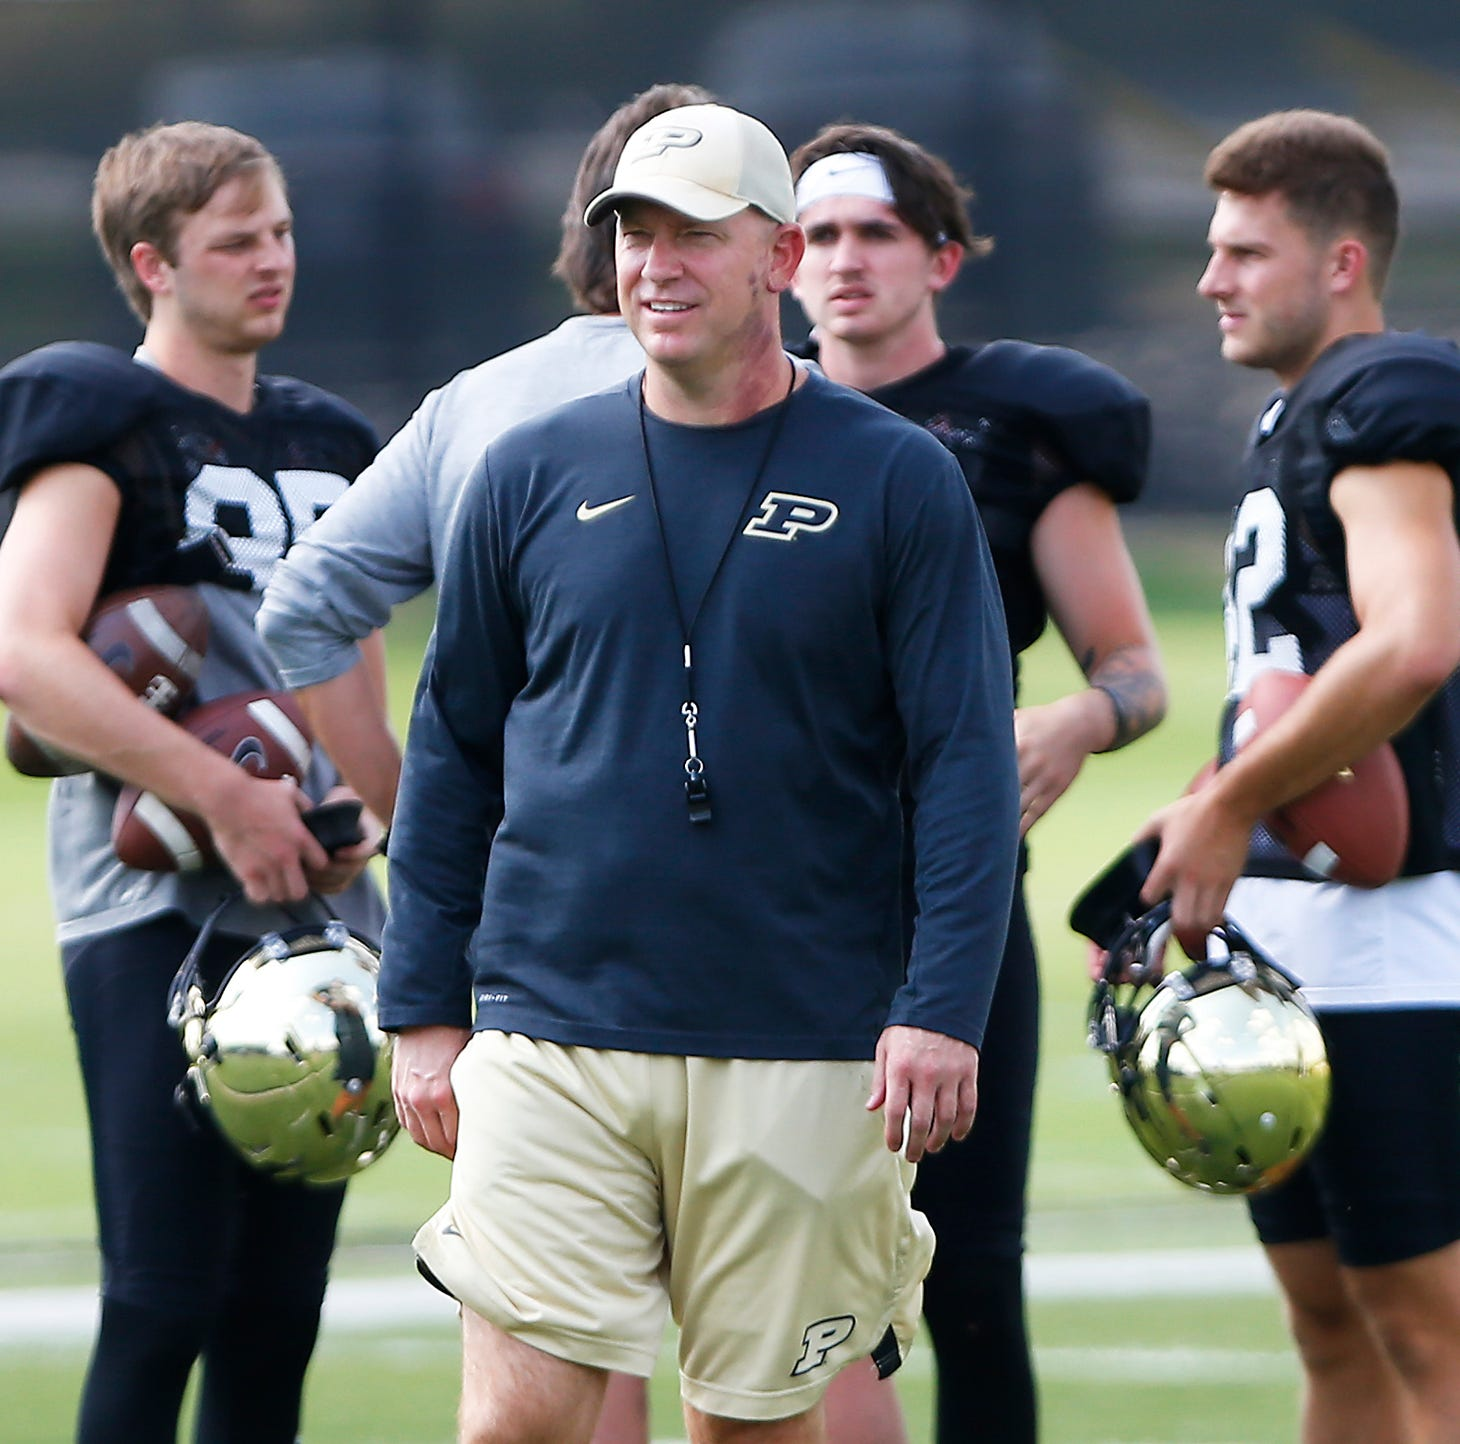 'Great opportunity' awaits Purdue football against No. 2 Ohio State